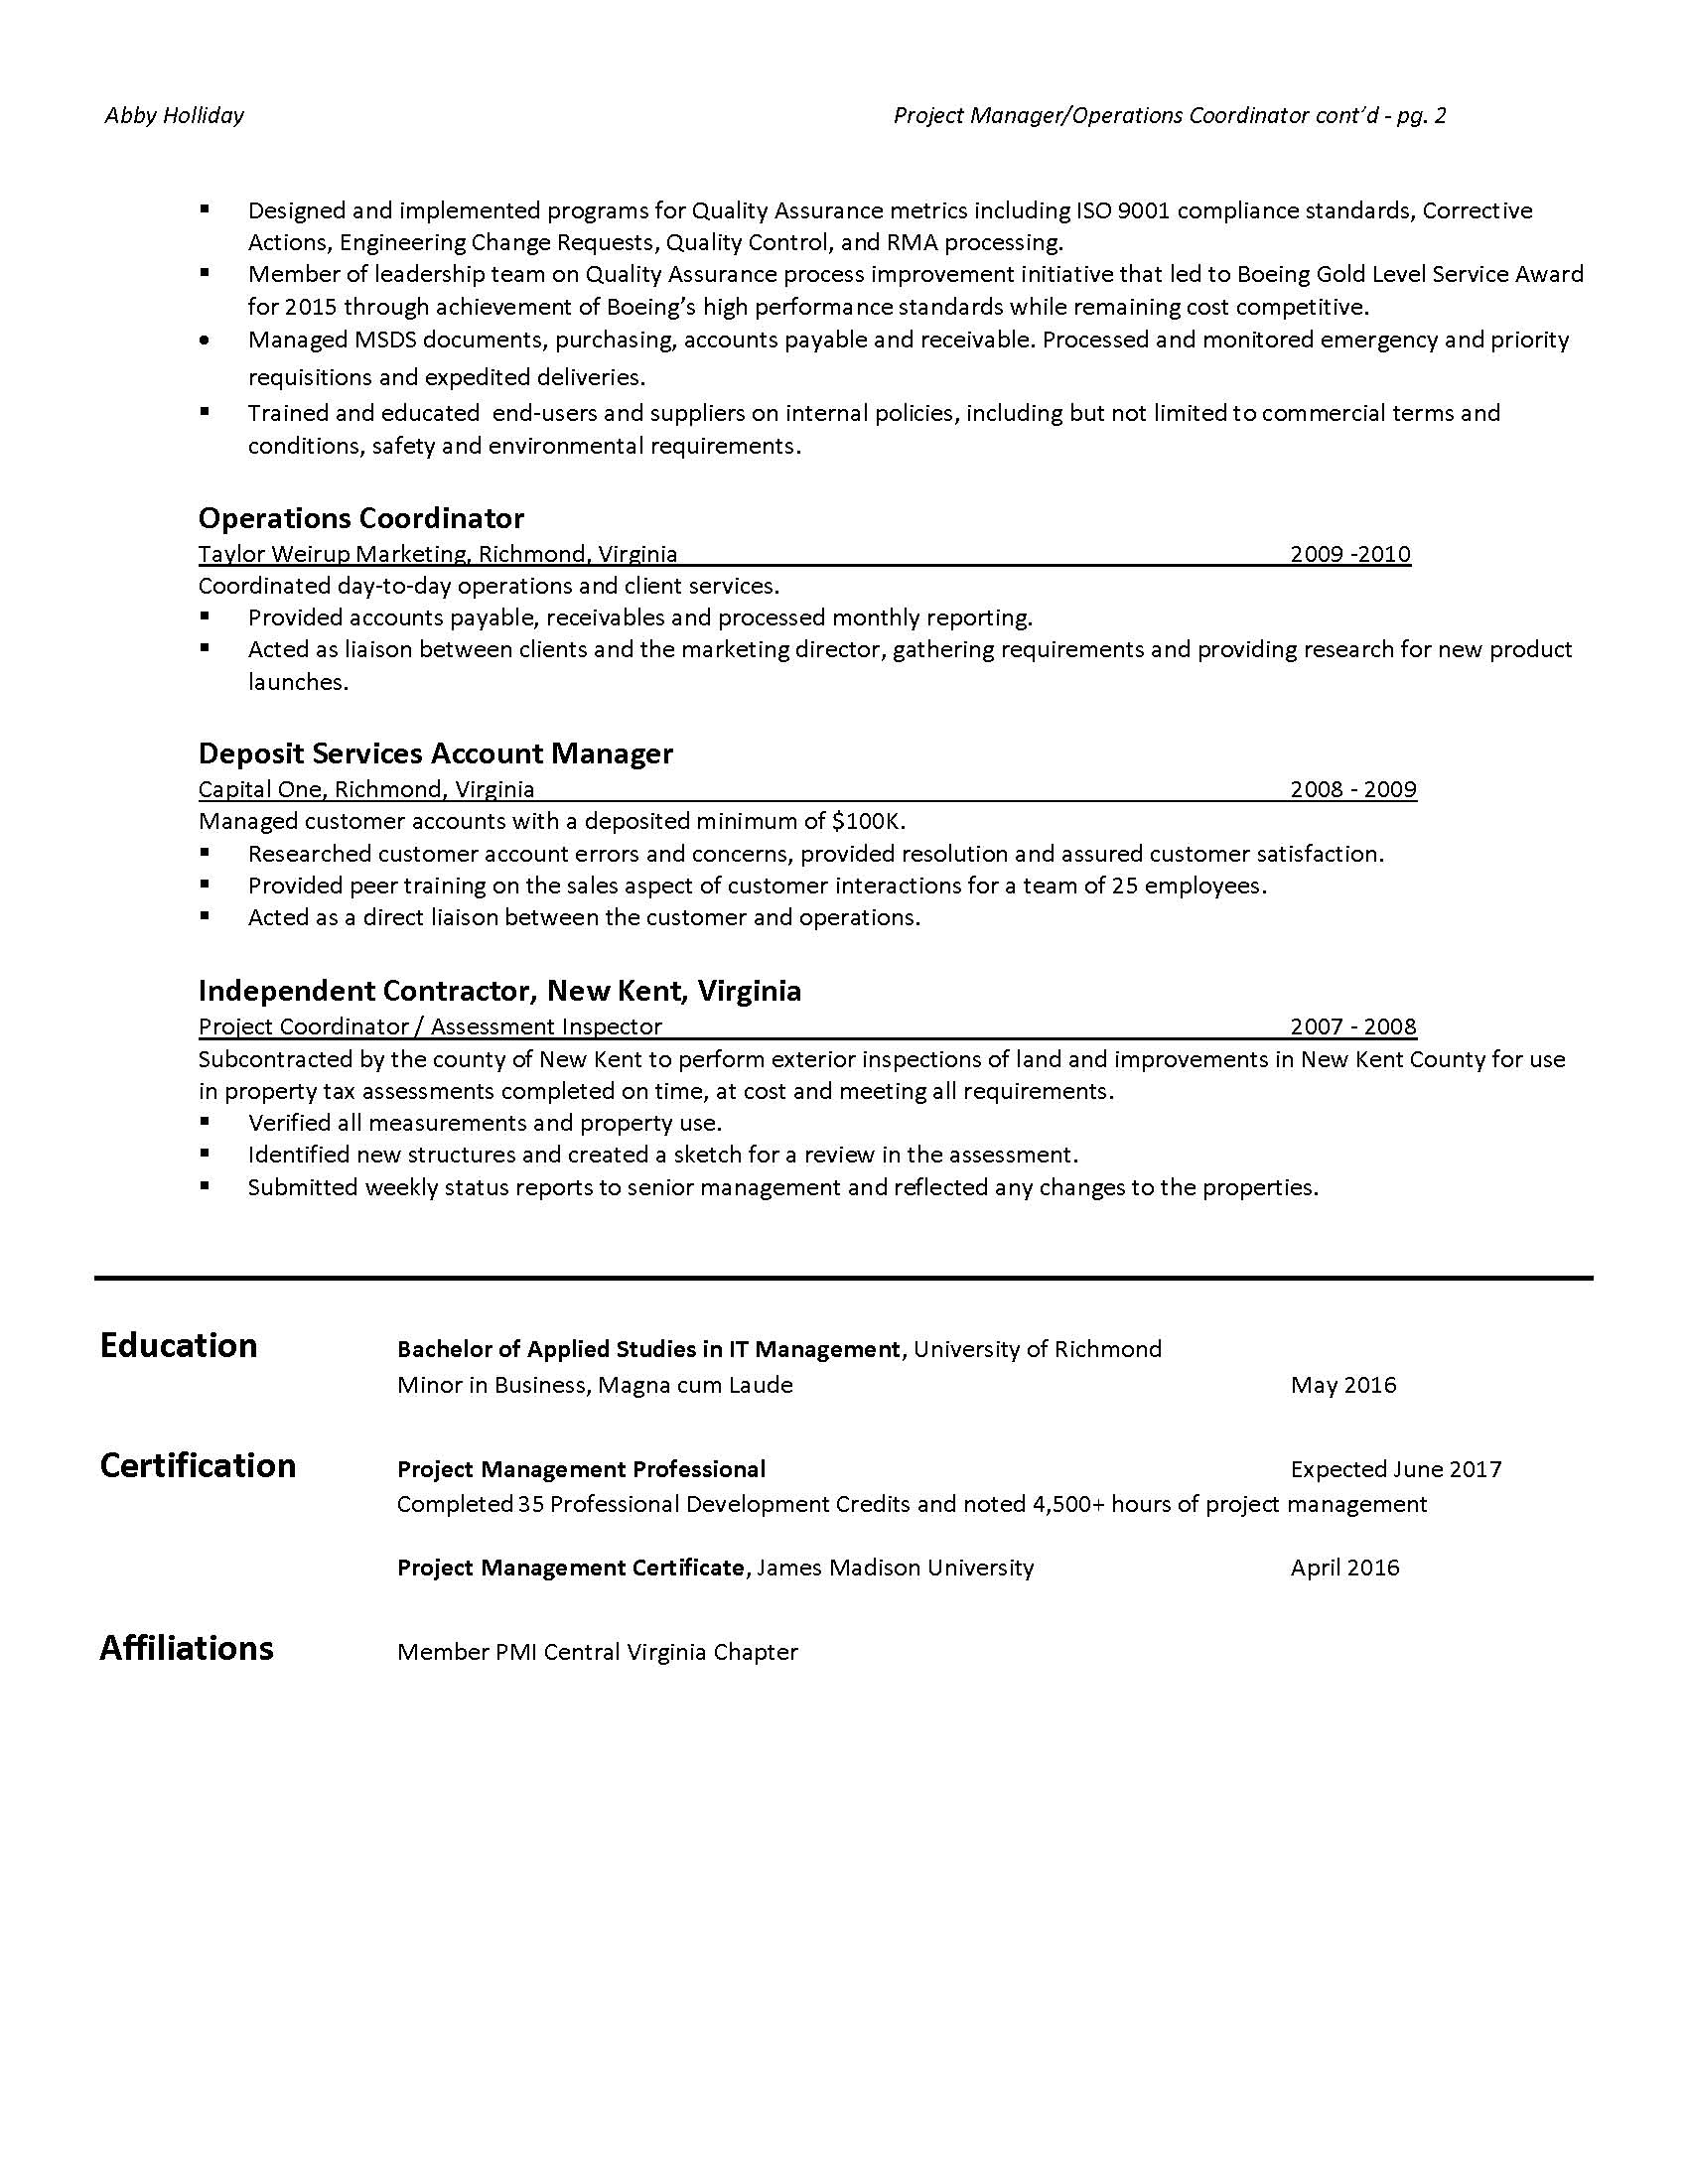 Project Manager Resume con't